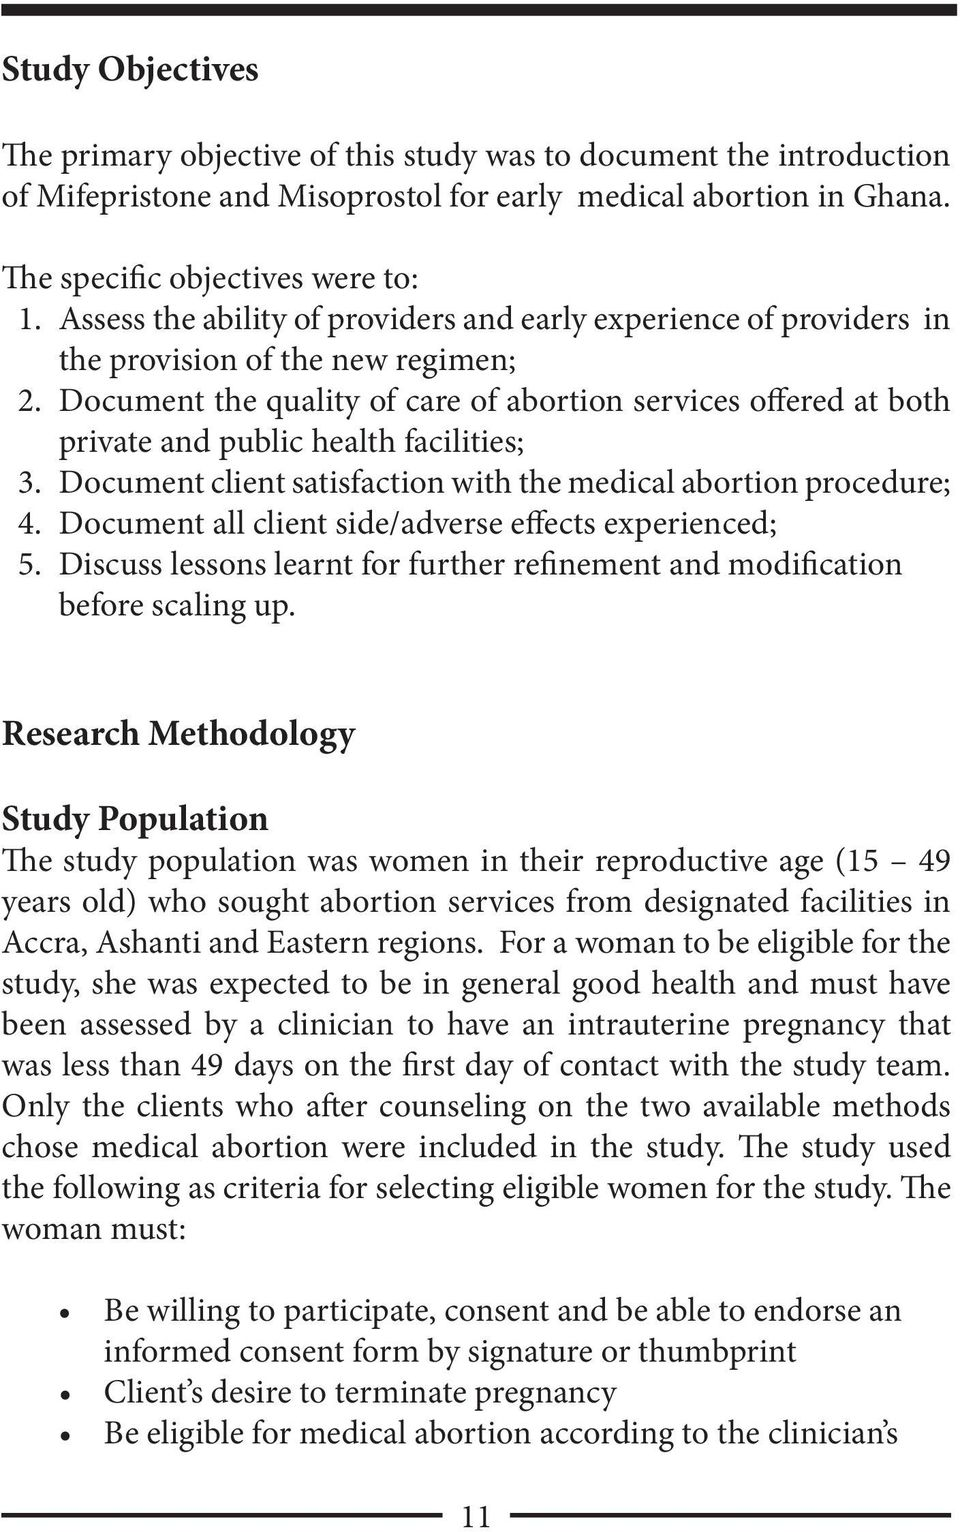 5 page research paper on abortion